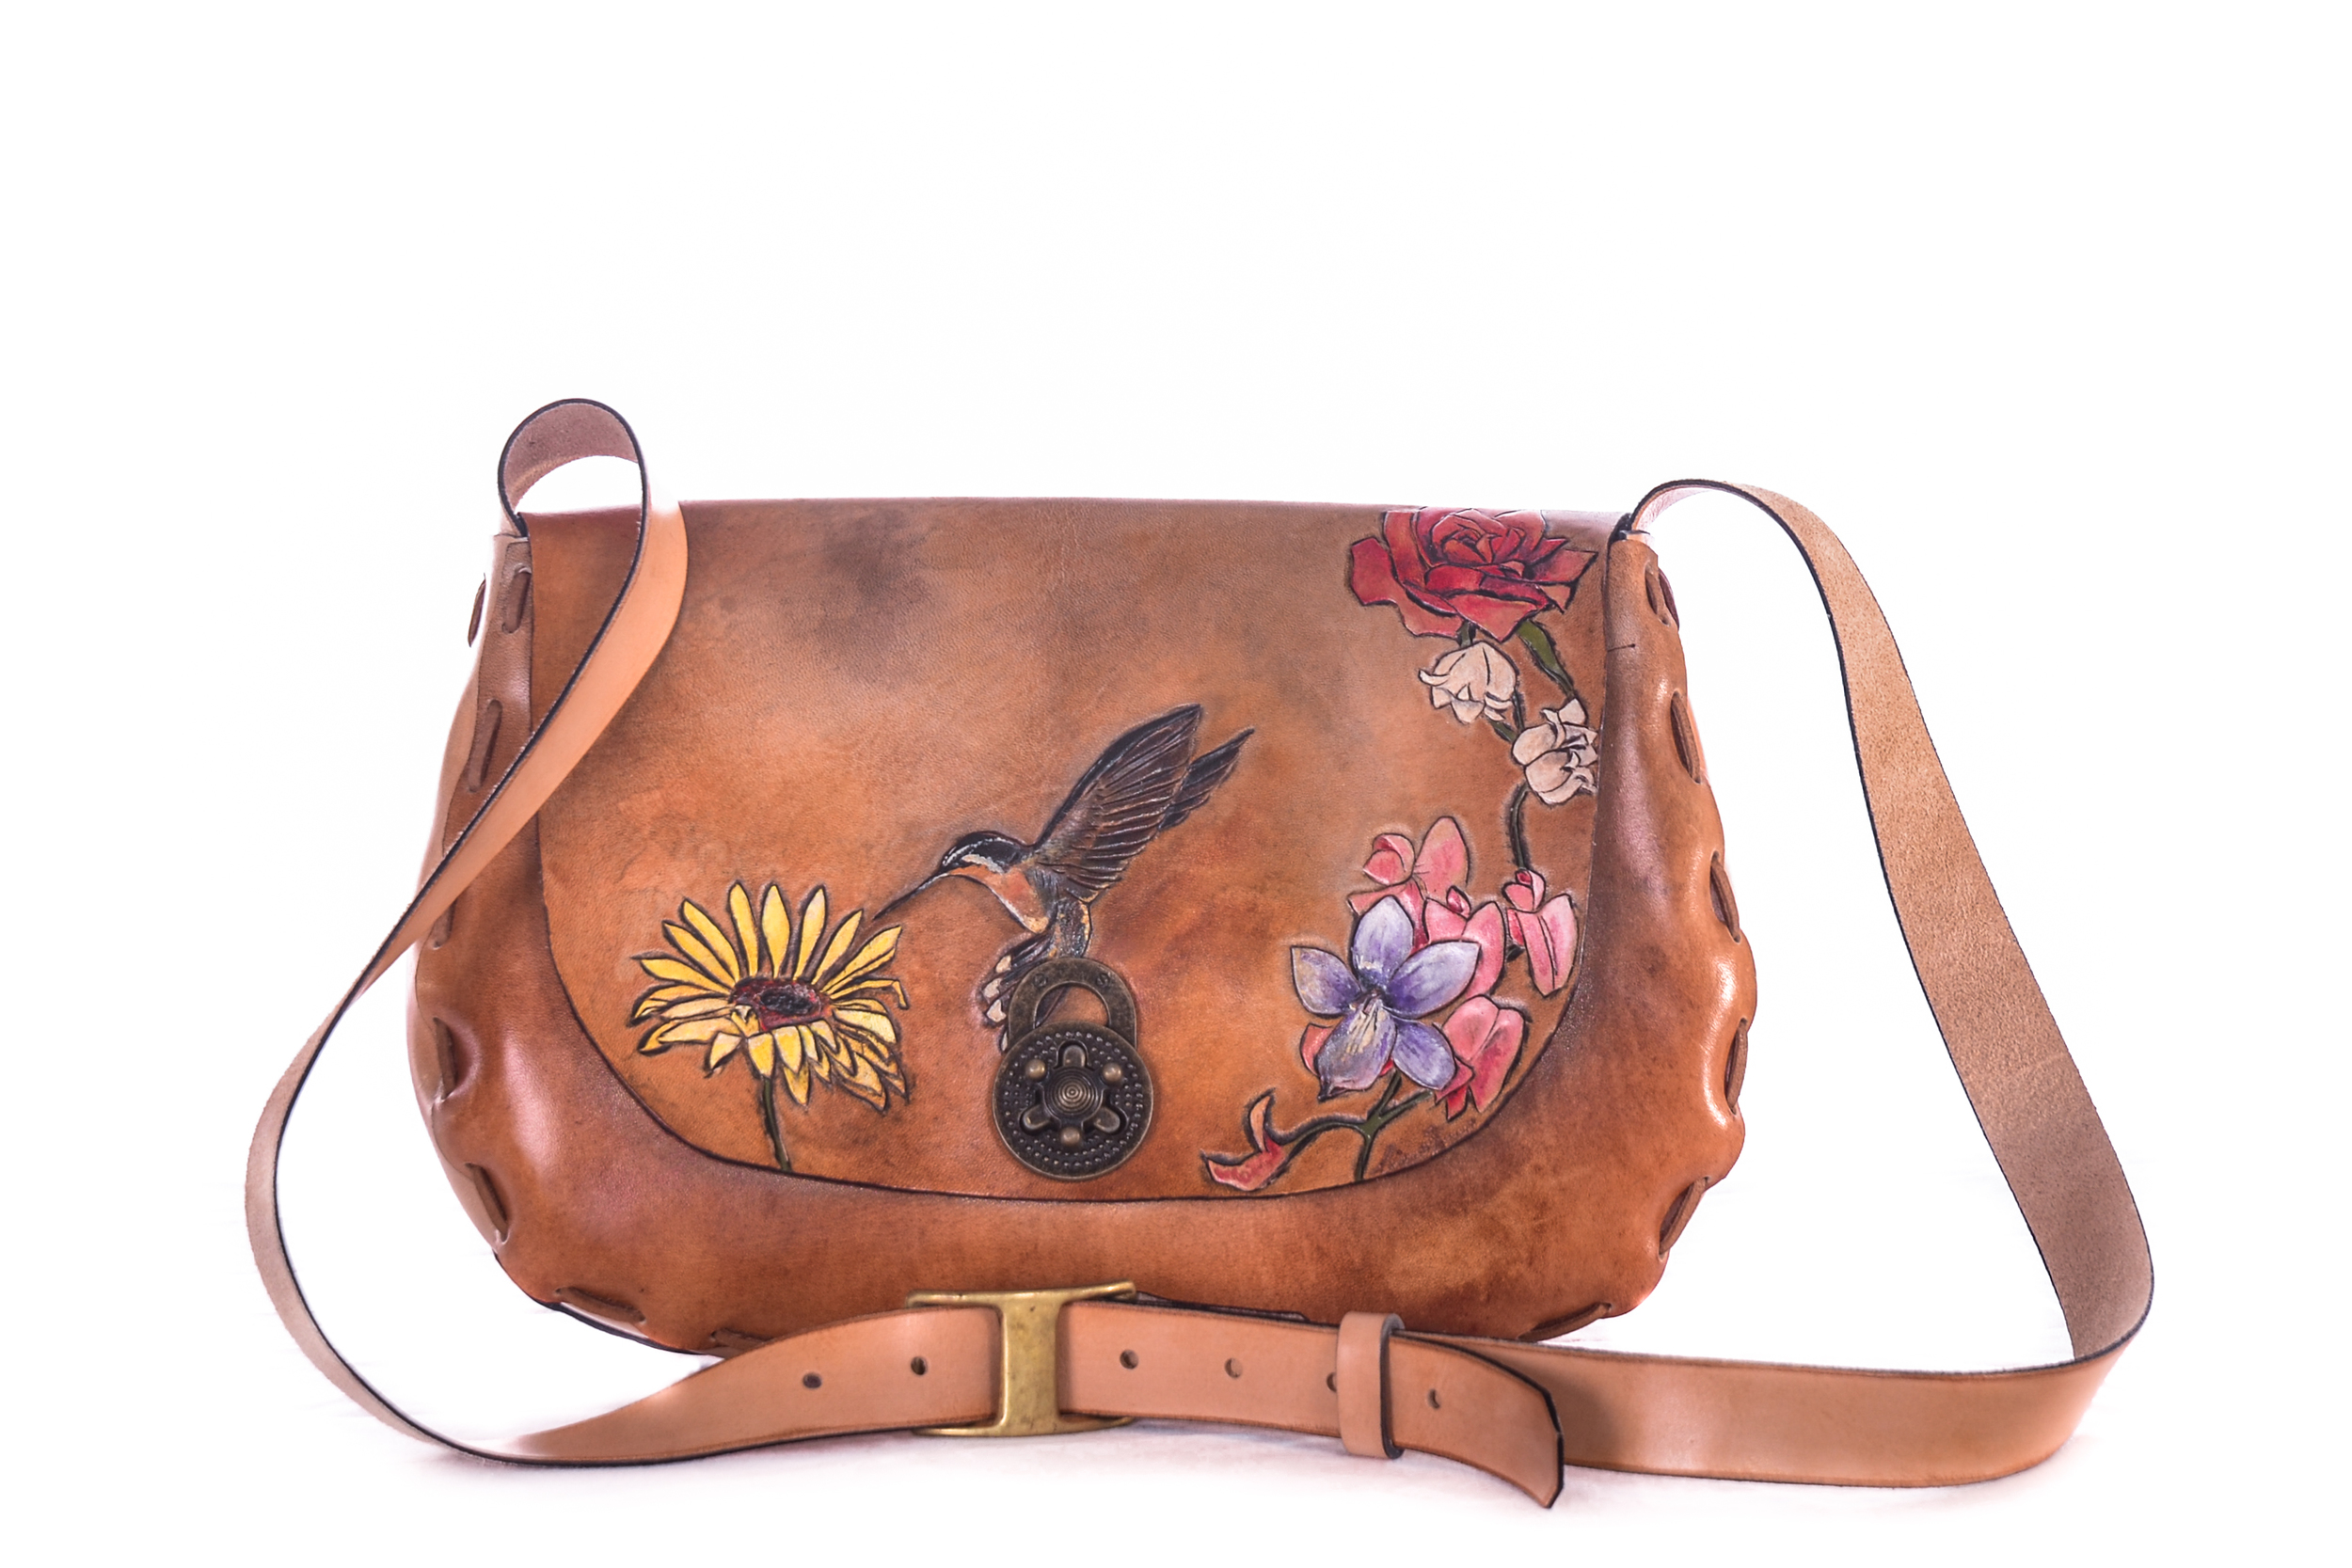 hummingbird-and-flowers-leather-purse-15.jpg